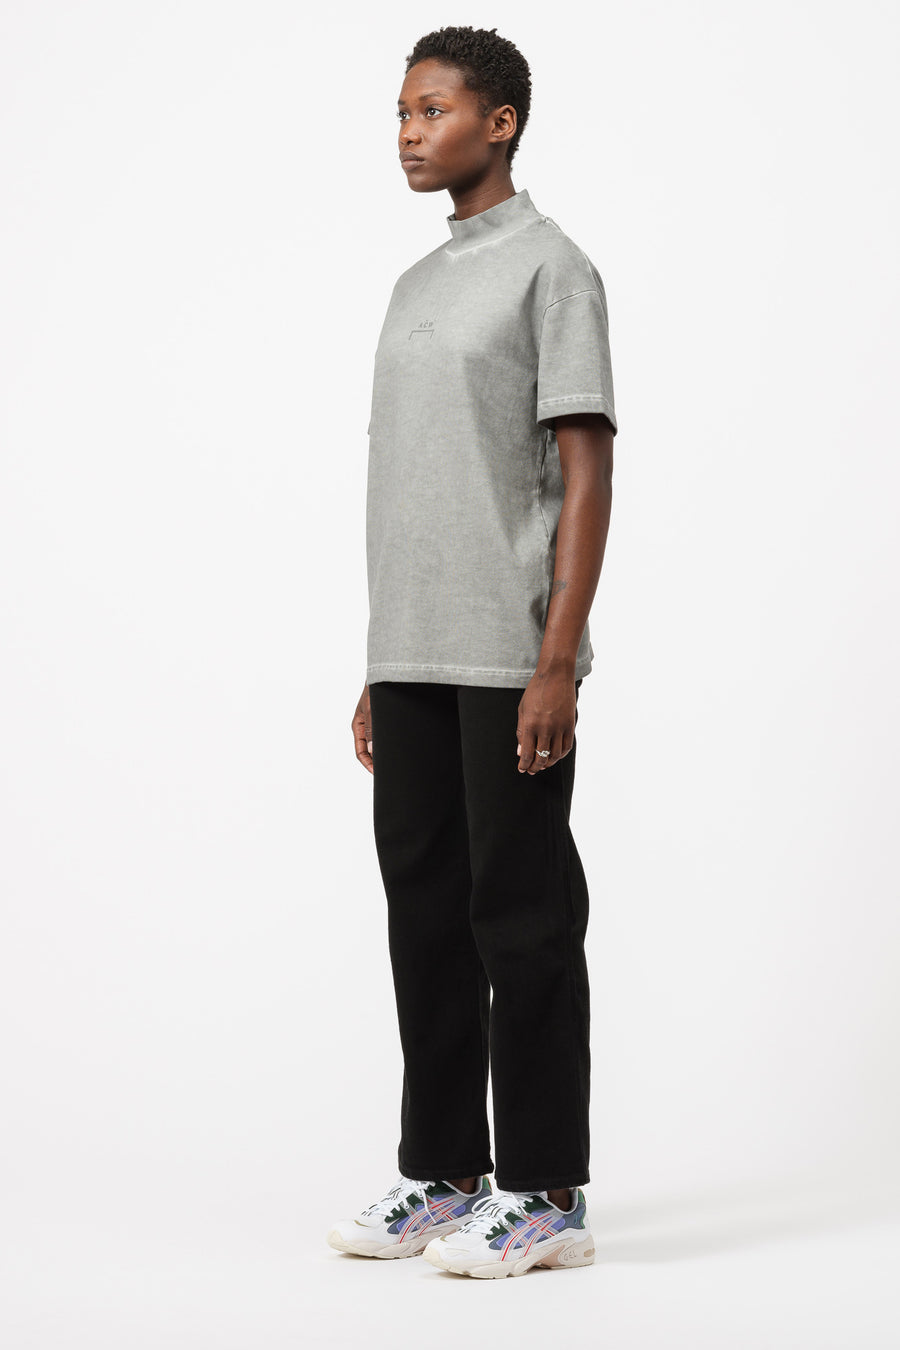 A-COLD-WALL* Rib Neck T-Shirt in Slate - Notre